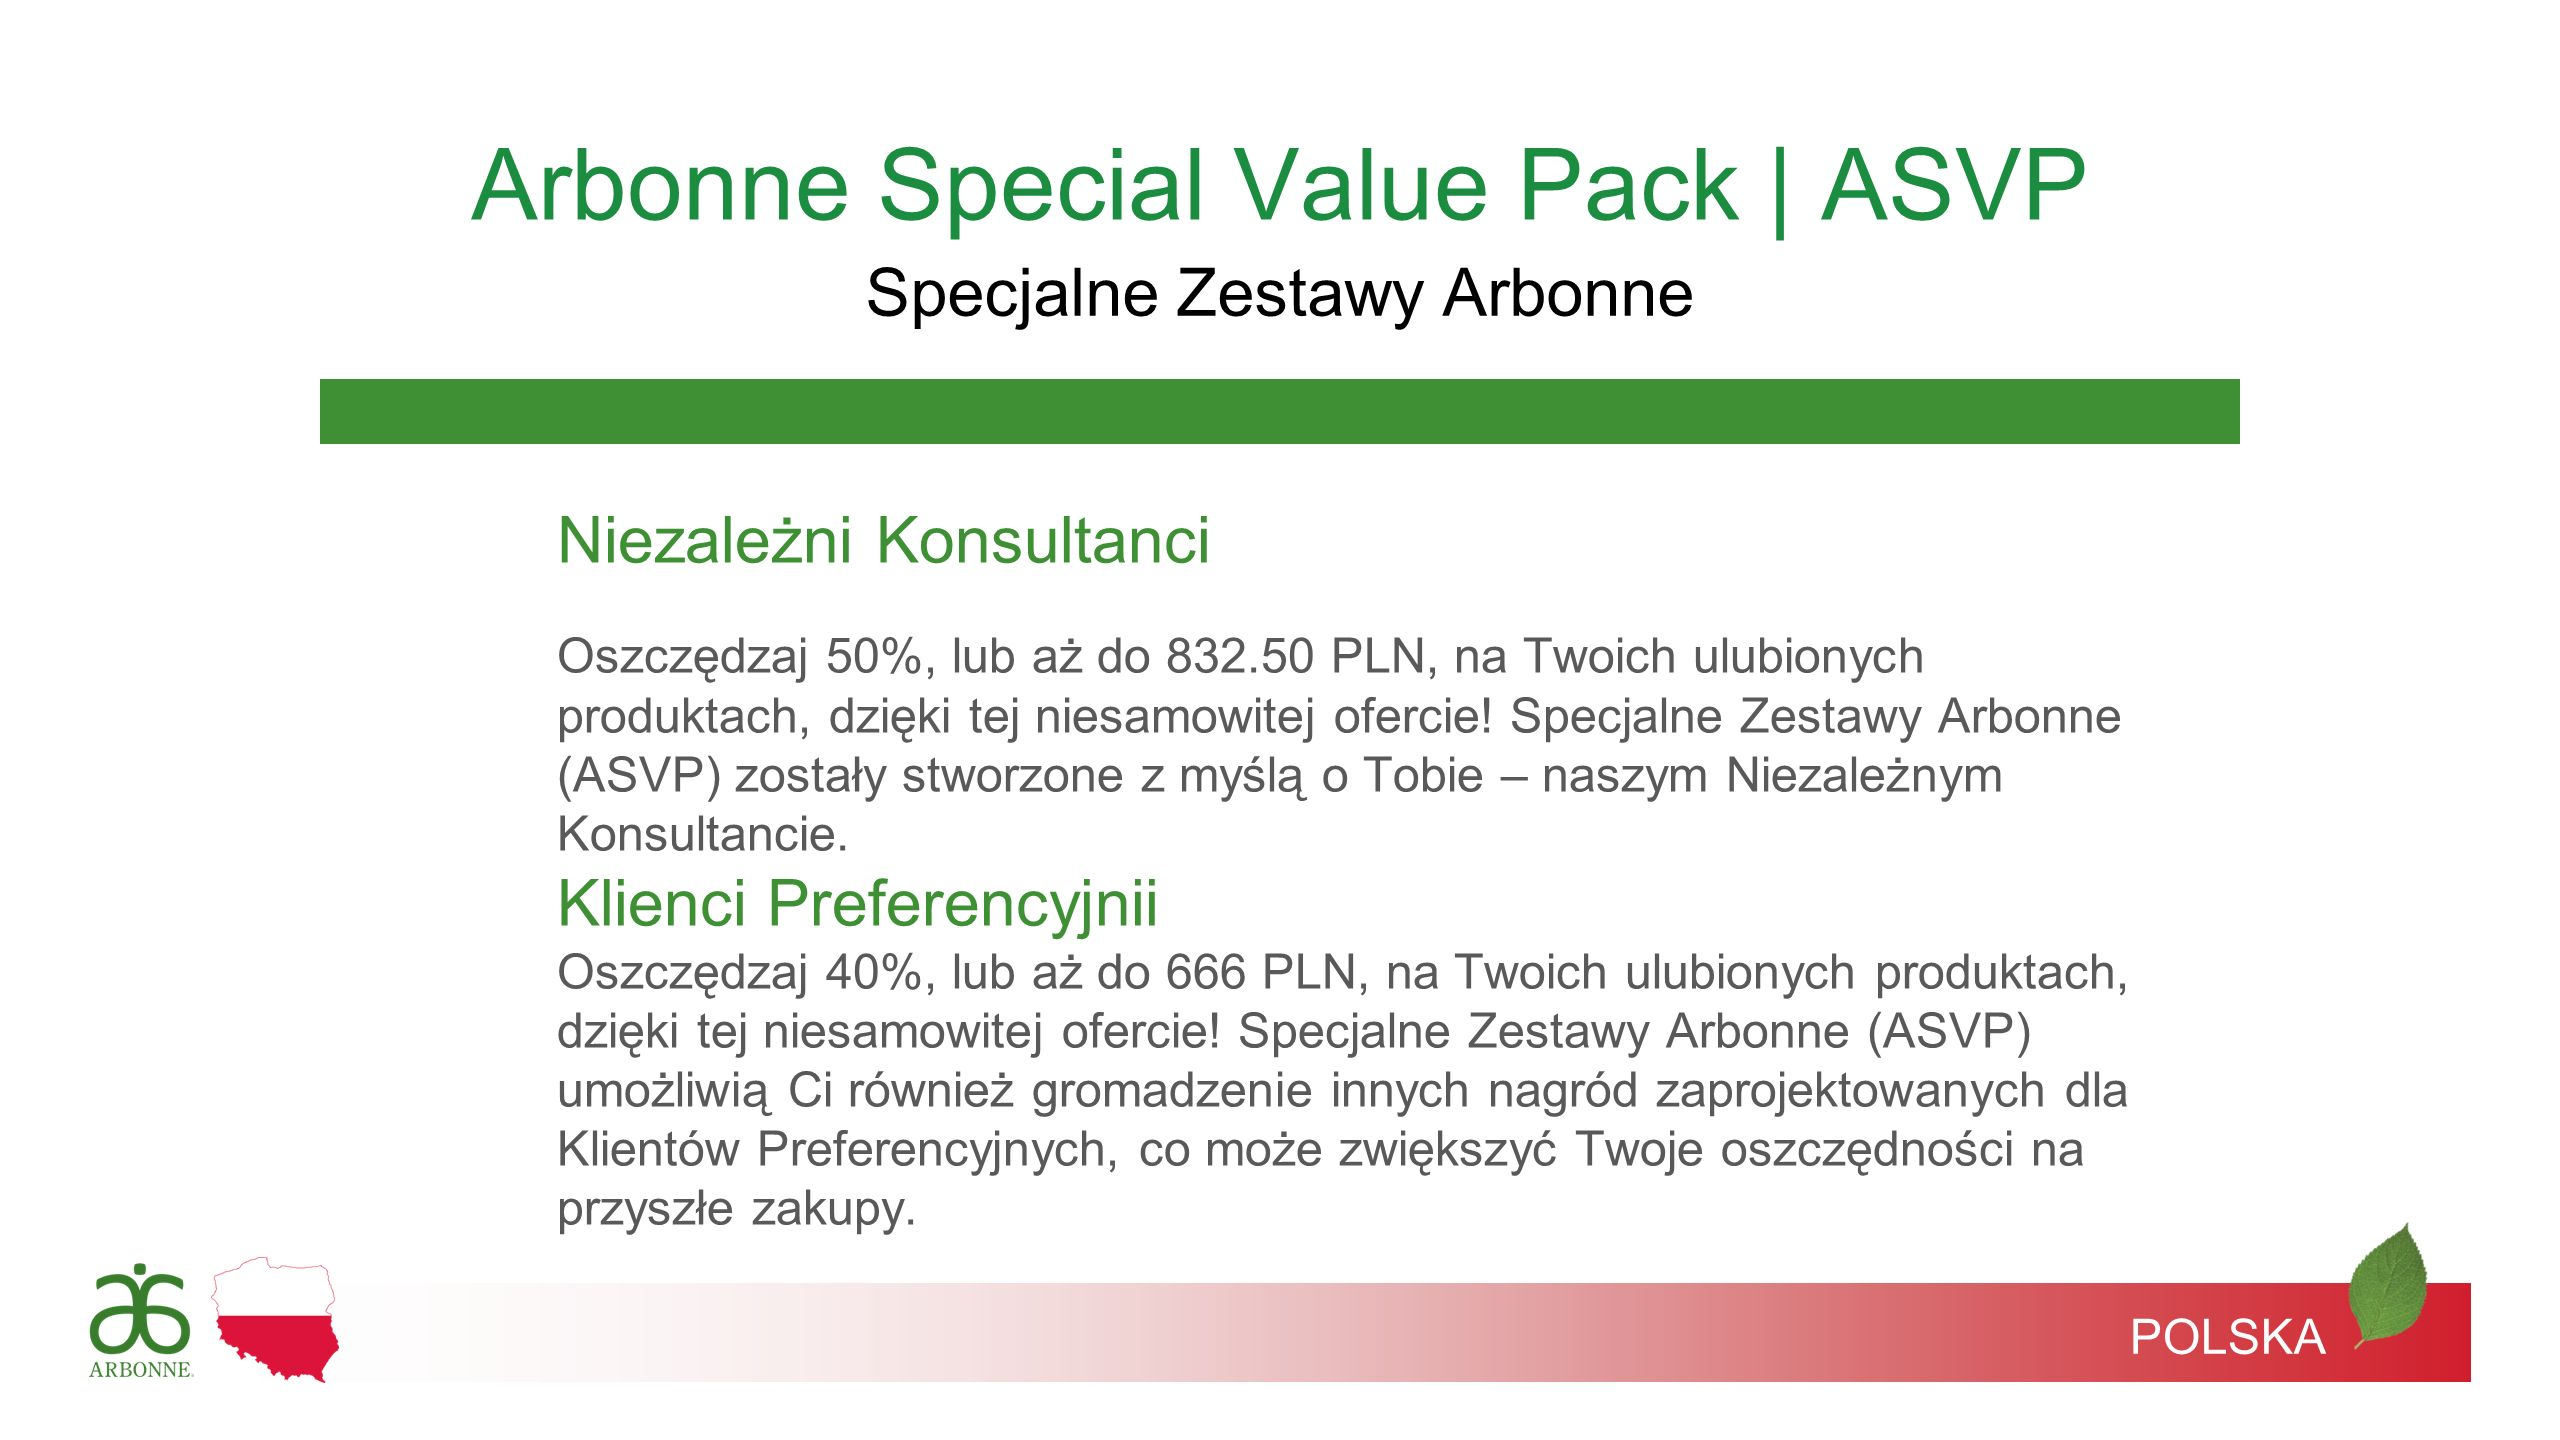 Arbonne Special Value Pack | ASVP